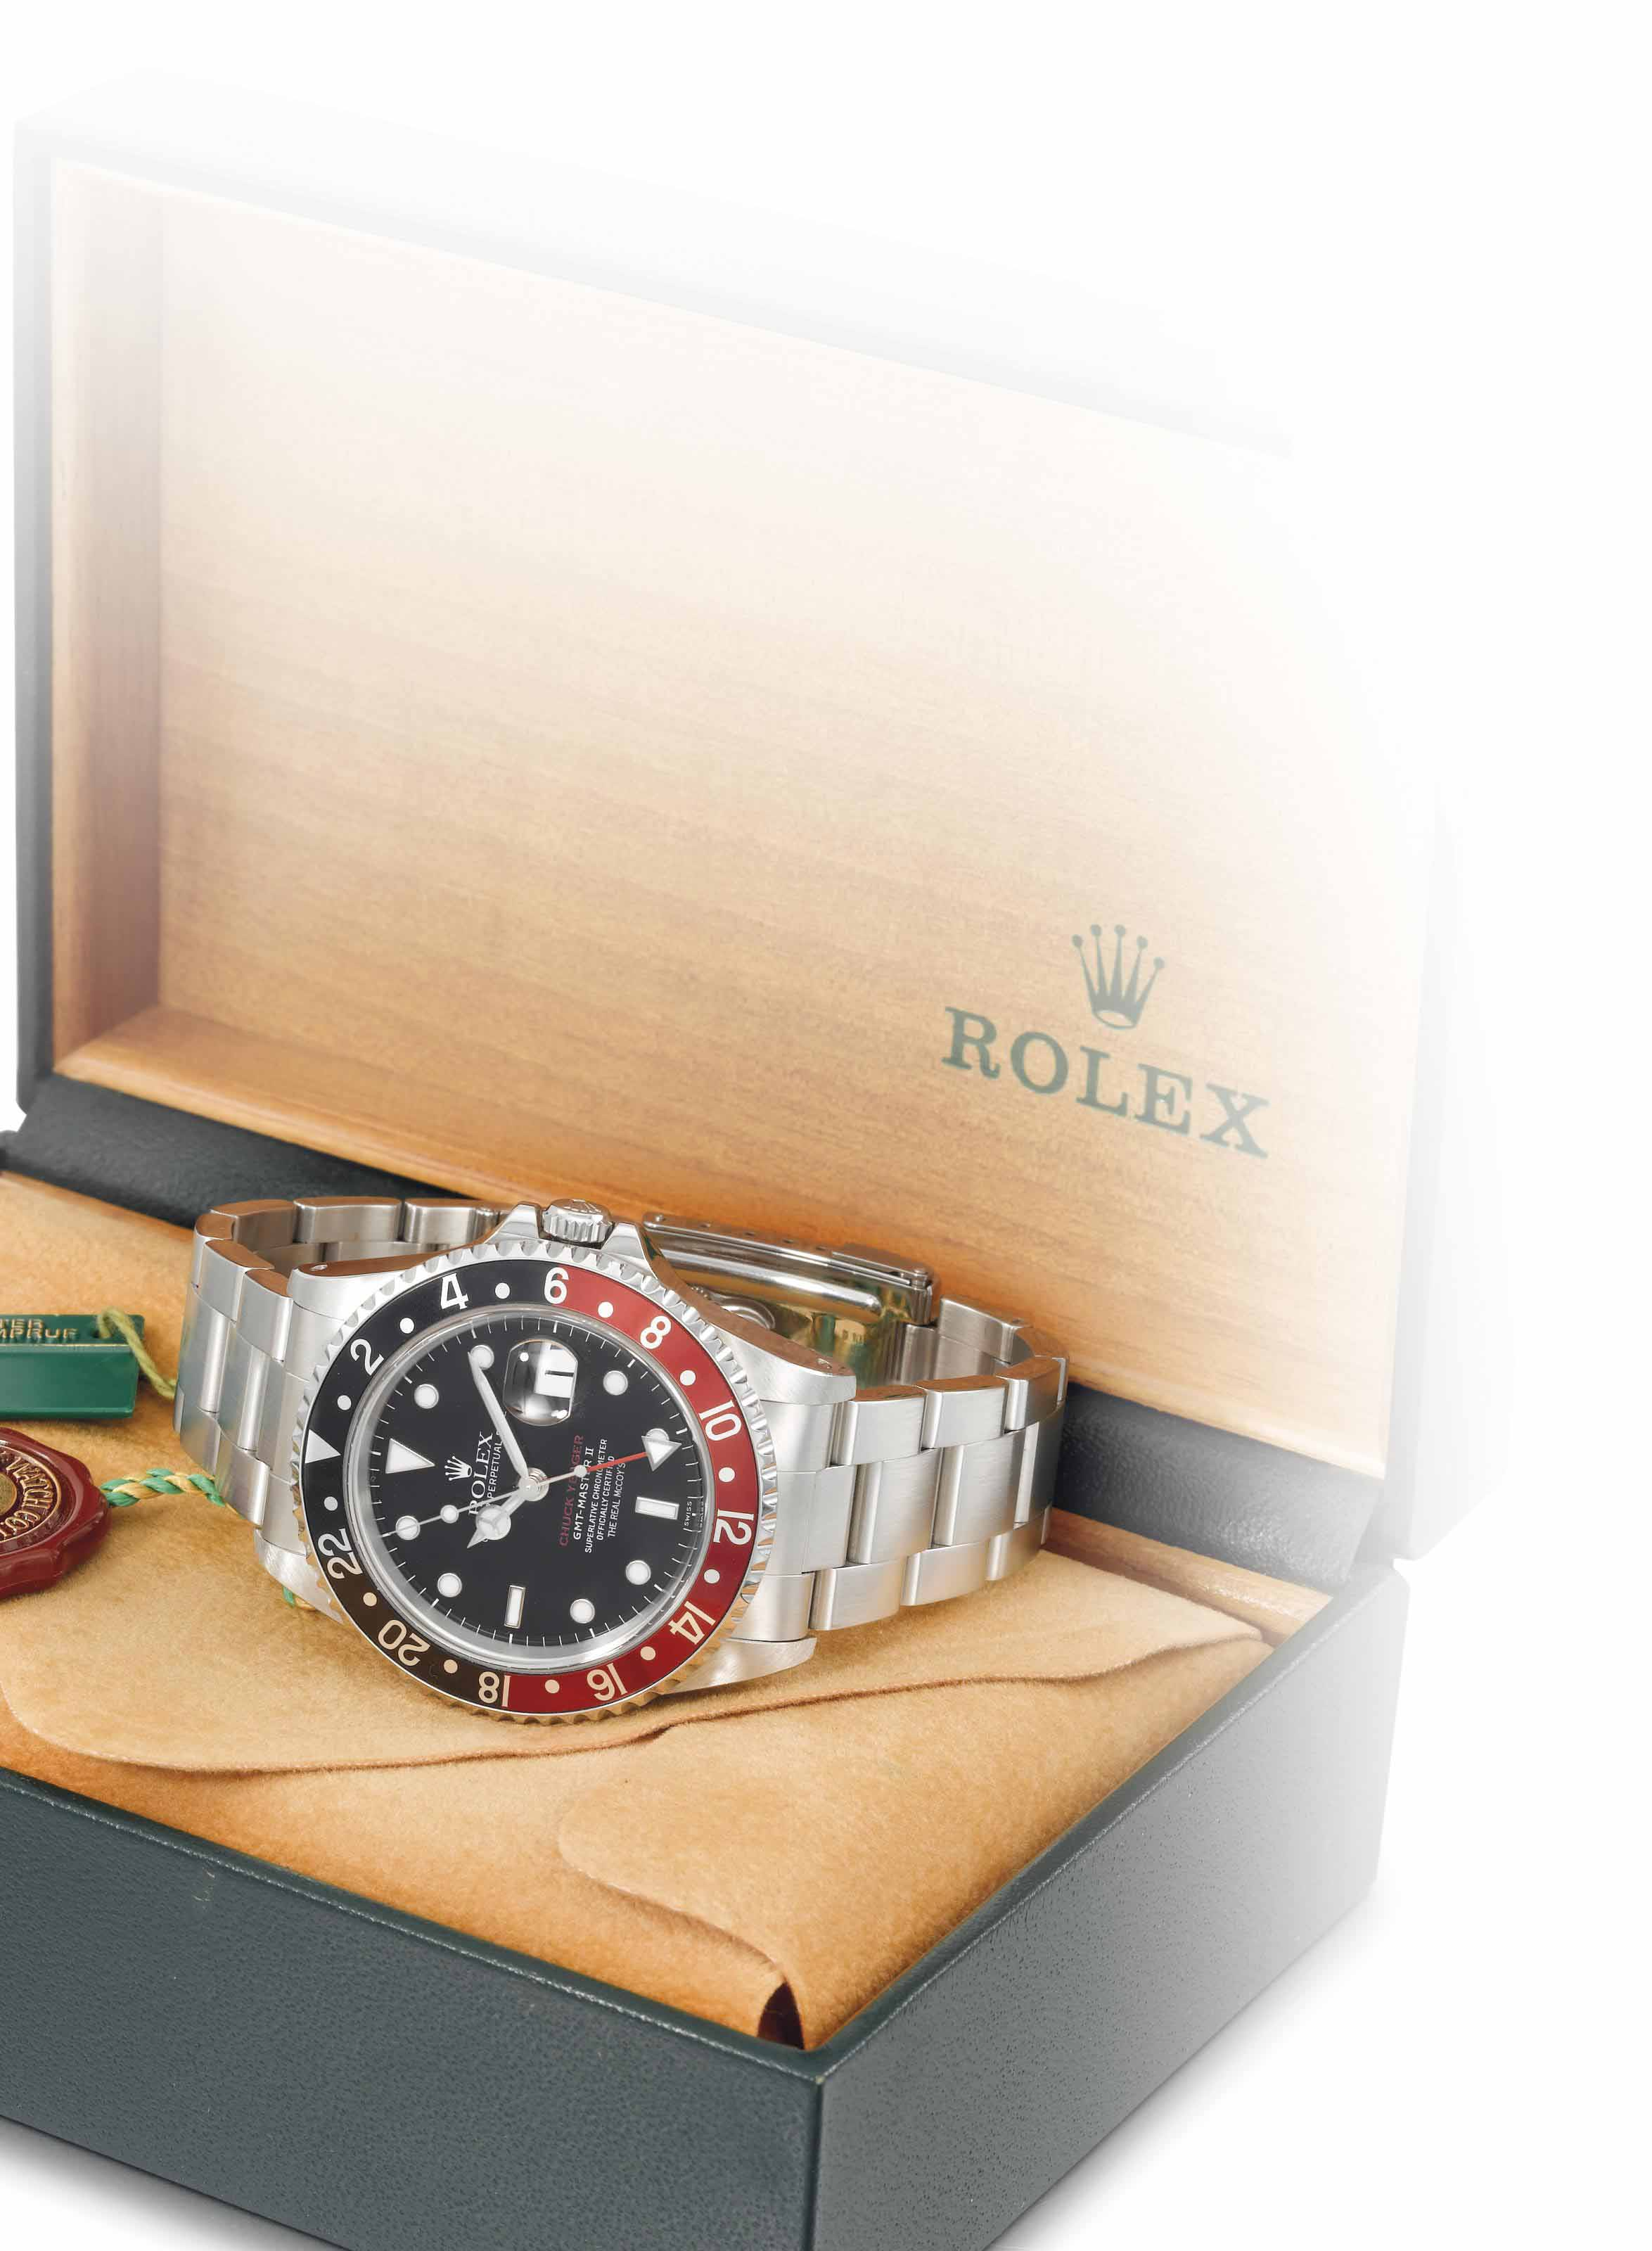 Rolex and The Real McCoy's. A